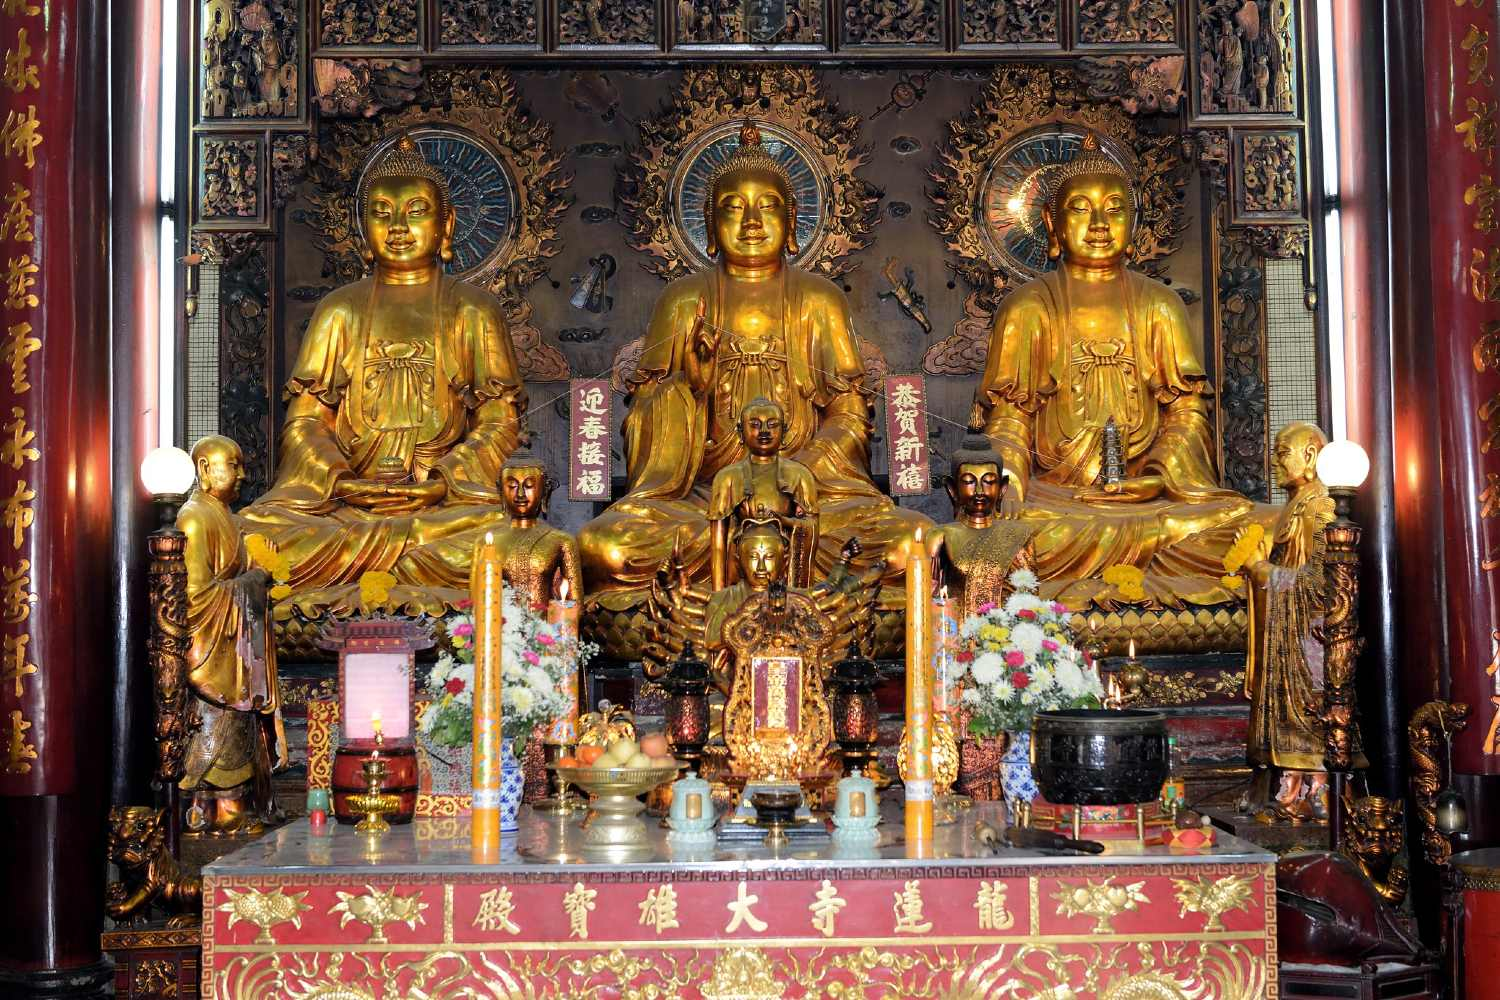 3 golden Buddha's side by side on an elevation in the temple Wat Mangkon Kamalawat in Chinatown, Bangkok